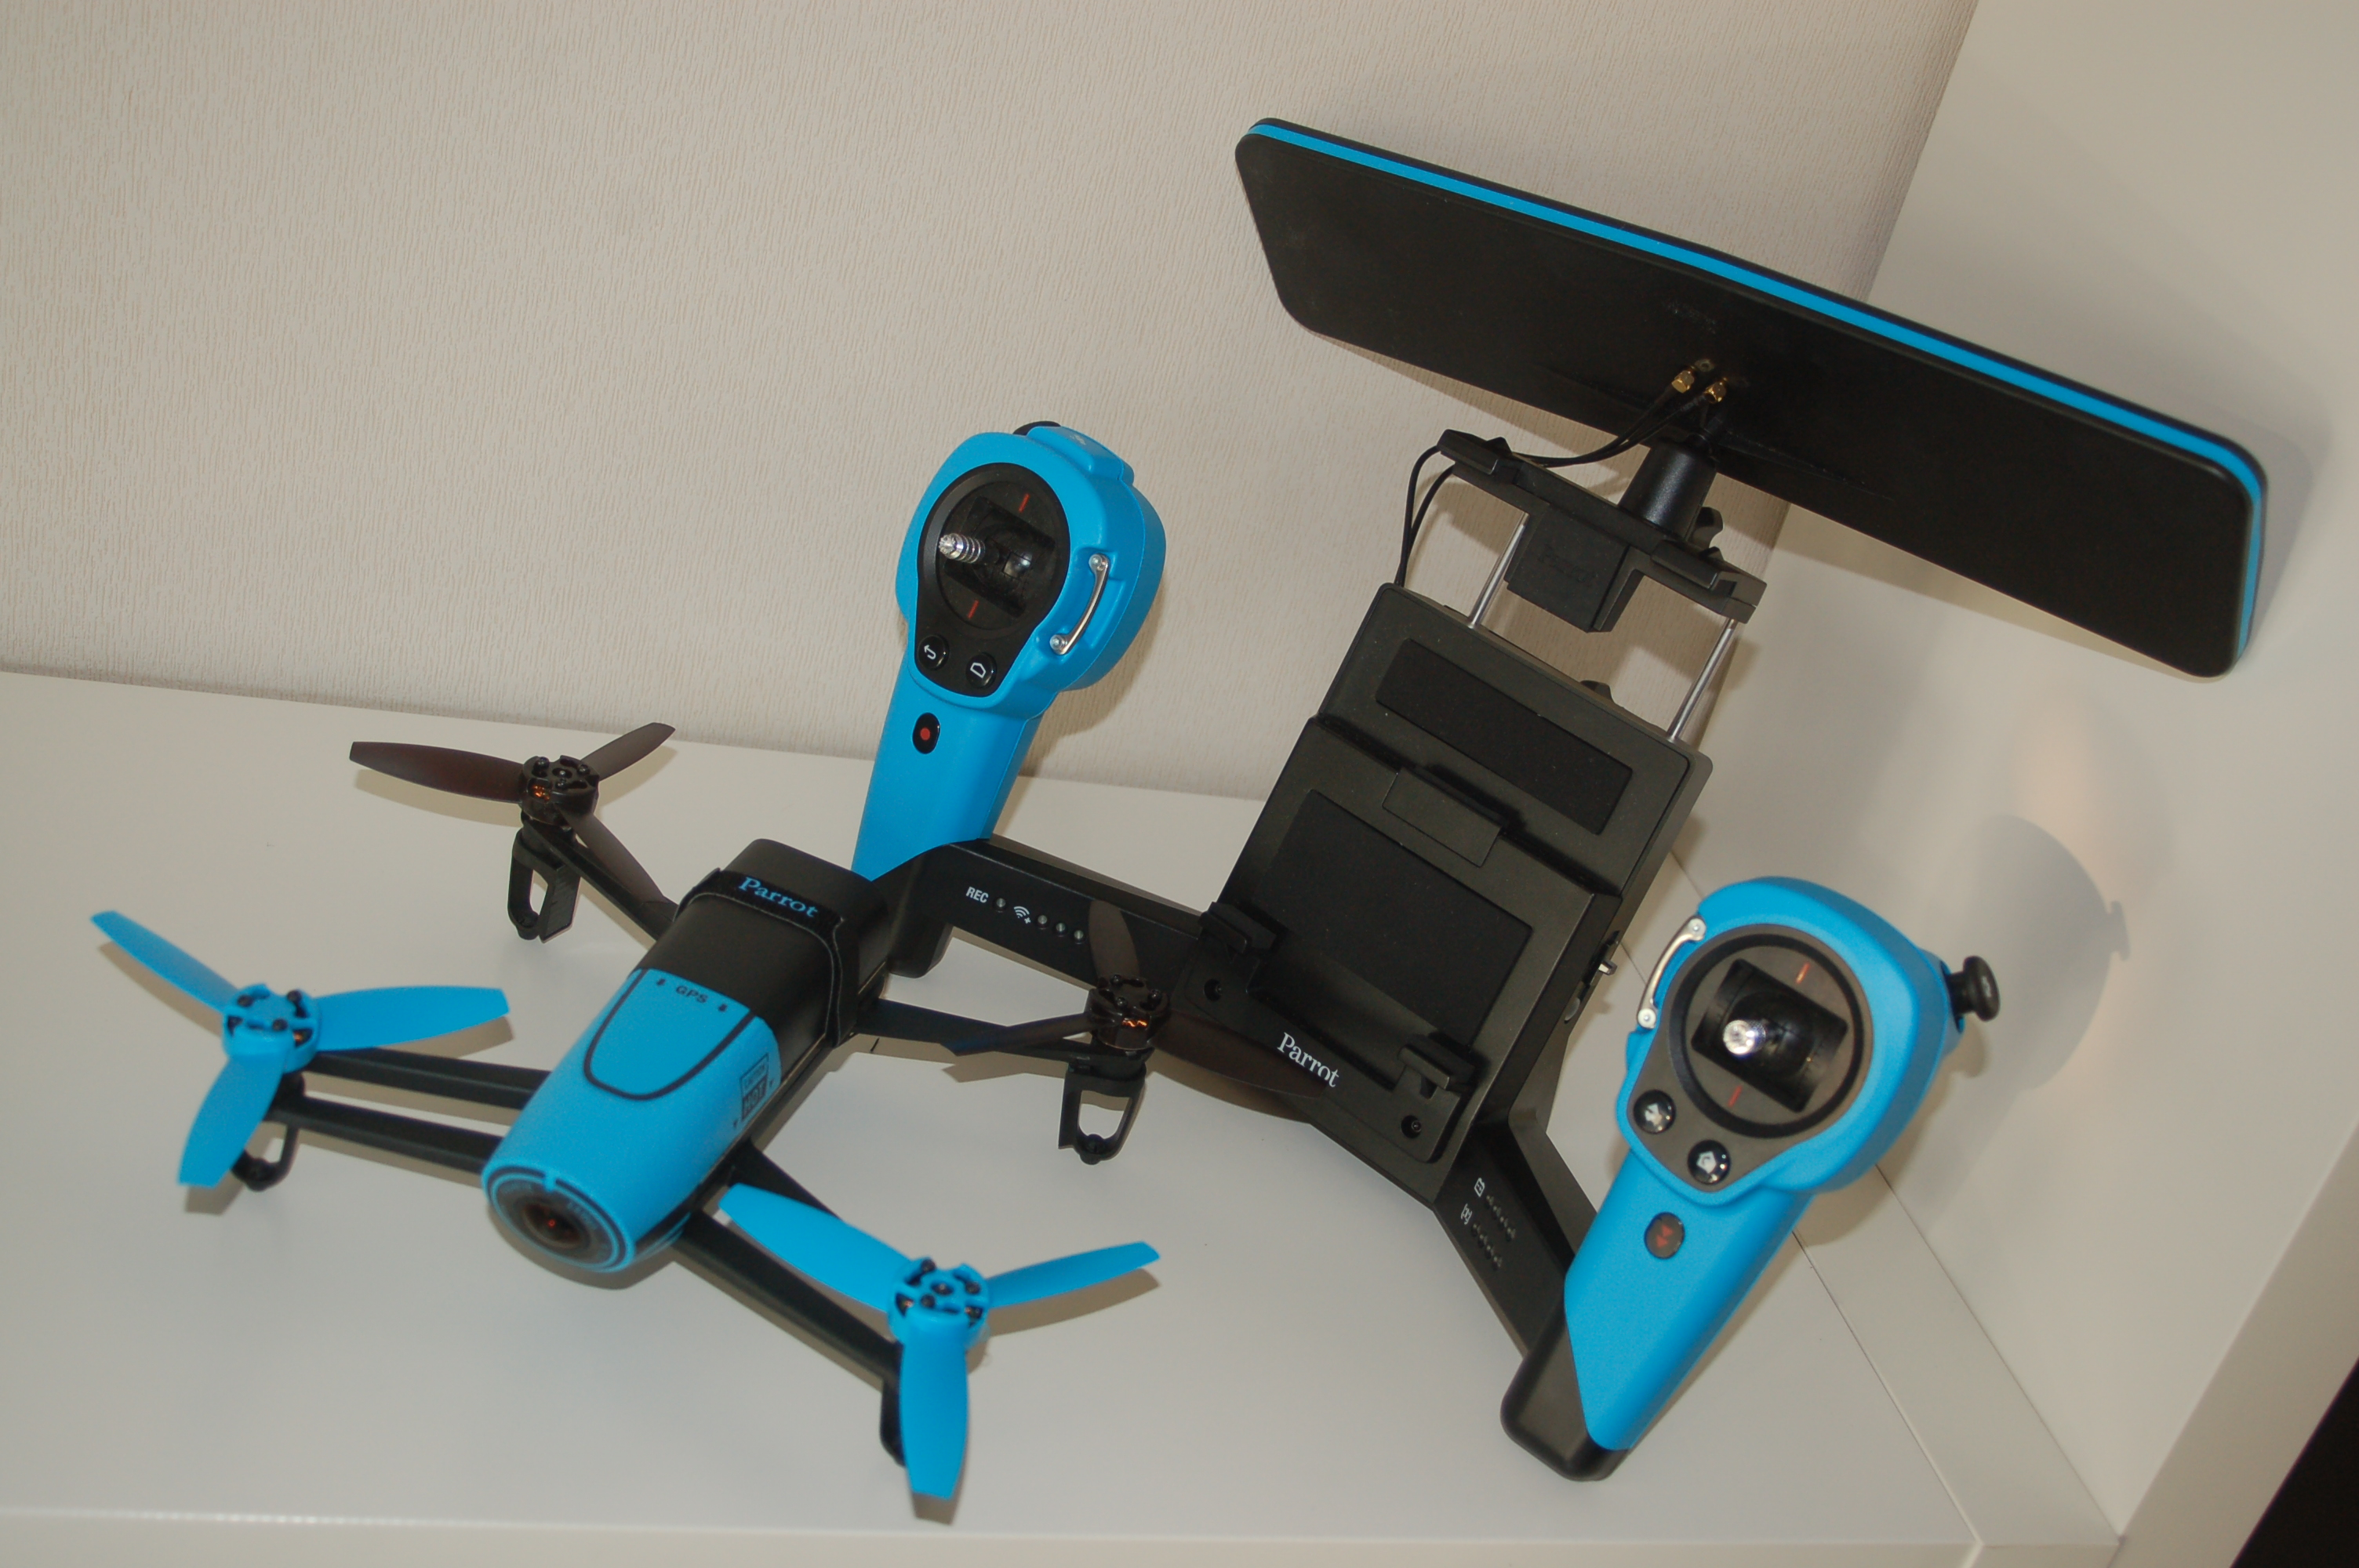 parrot ar drone gps with Test Parrot Bebop on Best Drones Under 200 further Los Siete Mejores Usos De Un Drone besides 3drobotics 3dr Iris additionally Parrot Rnb 6 In Dash Aftermarket System Brings Apple Carplay And Android Auto To Every Car together with How To Pilot Bebop Drone.